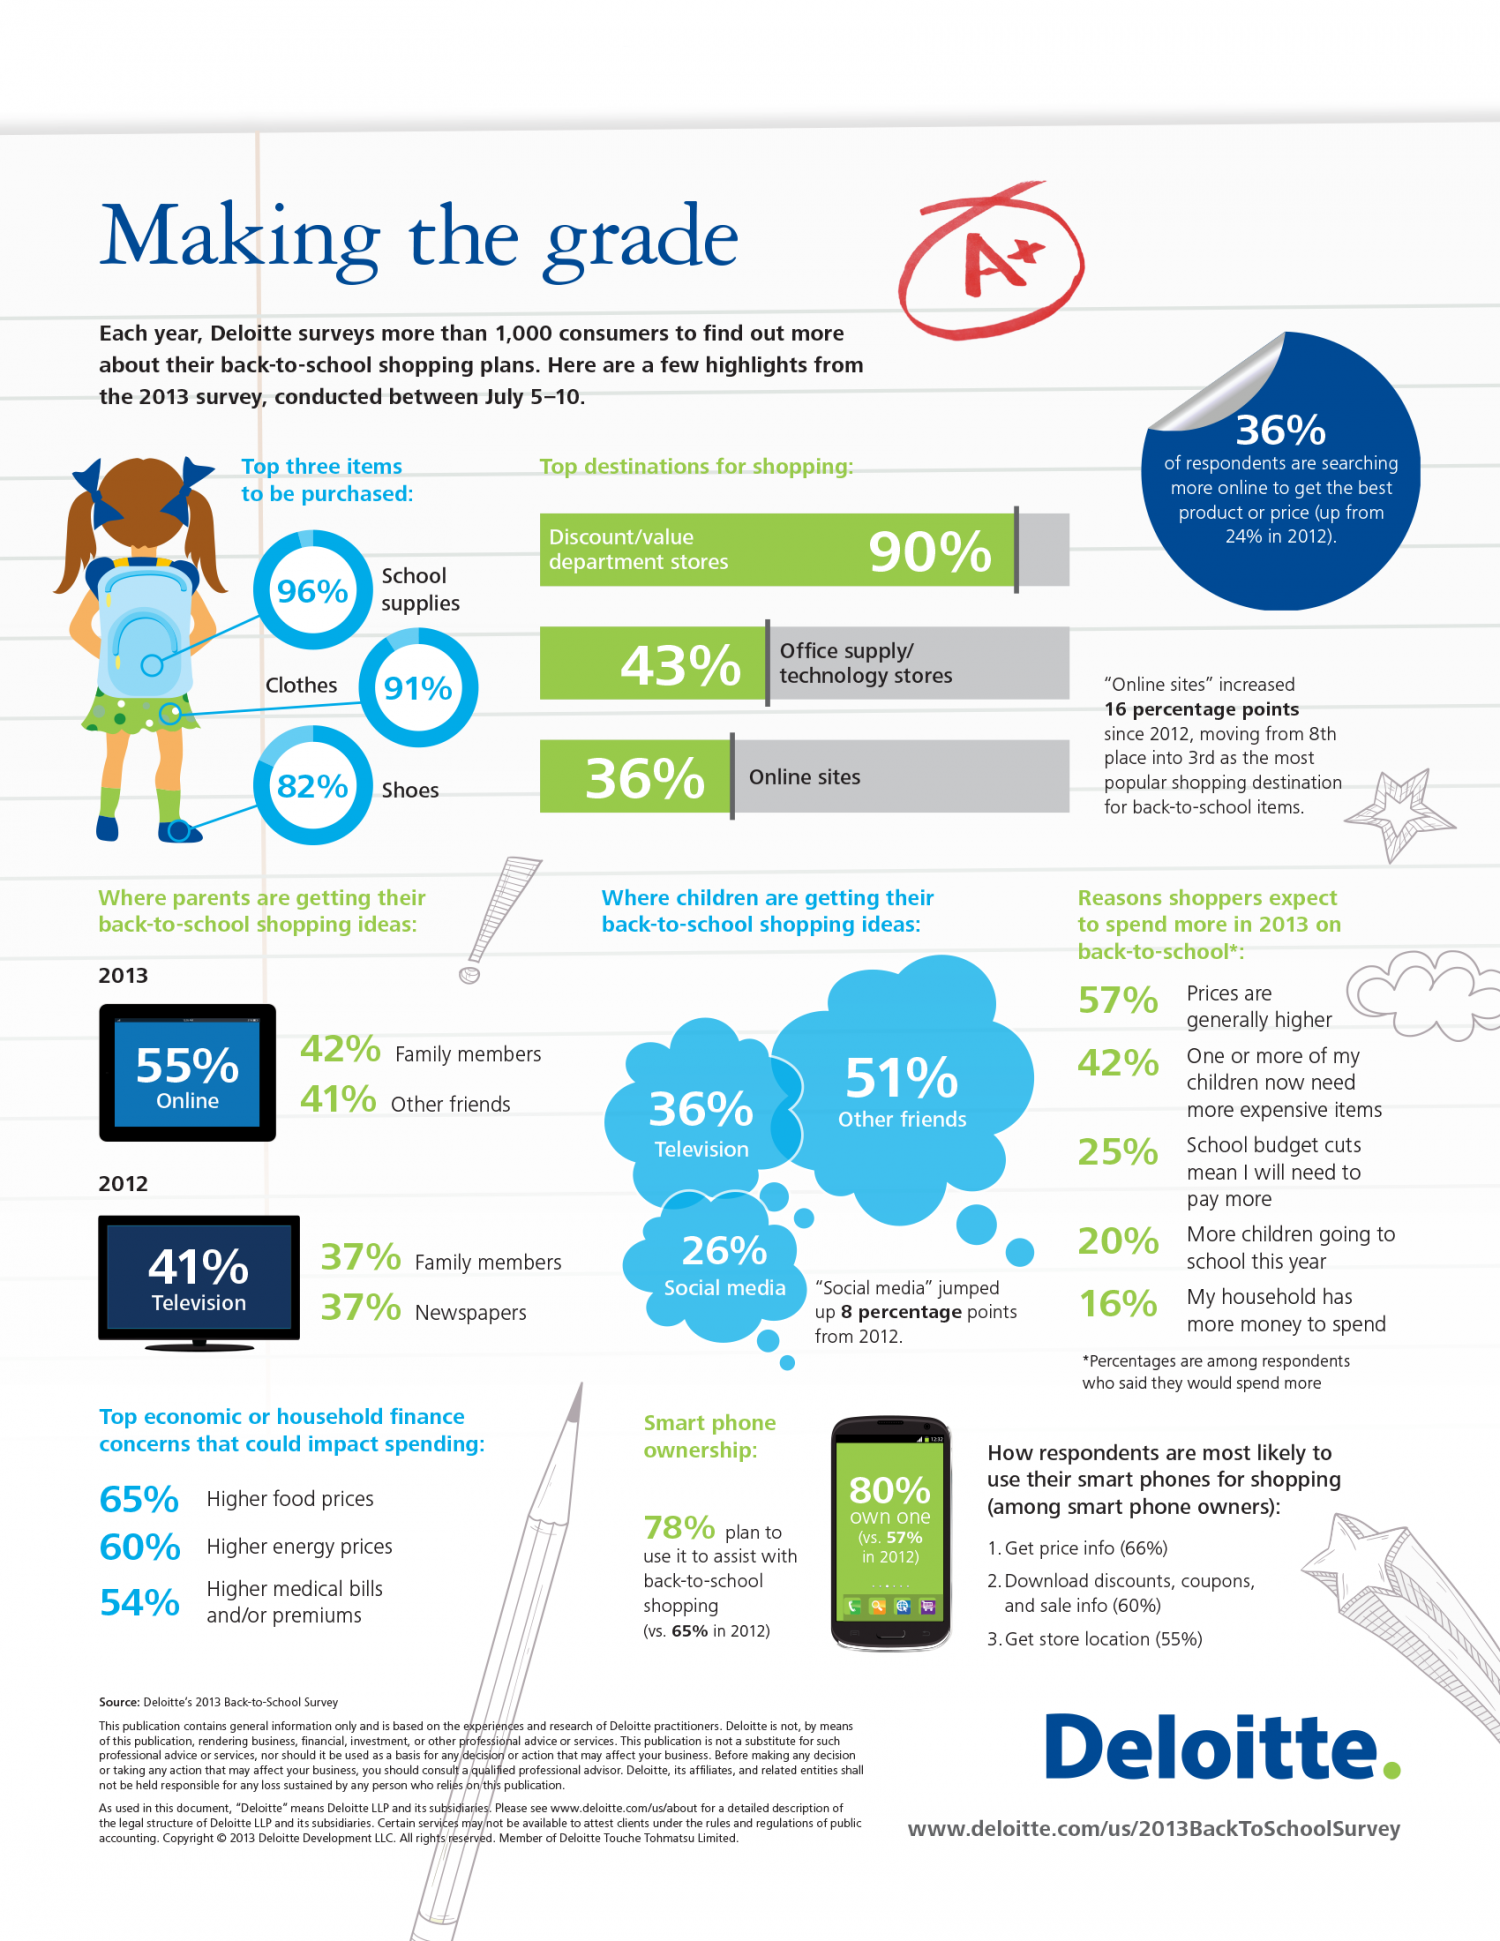 Making the grade: Back-to-school shopping habits Infographic